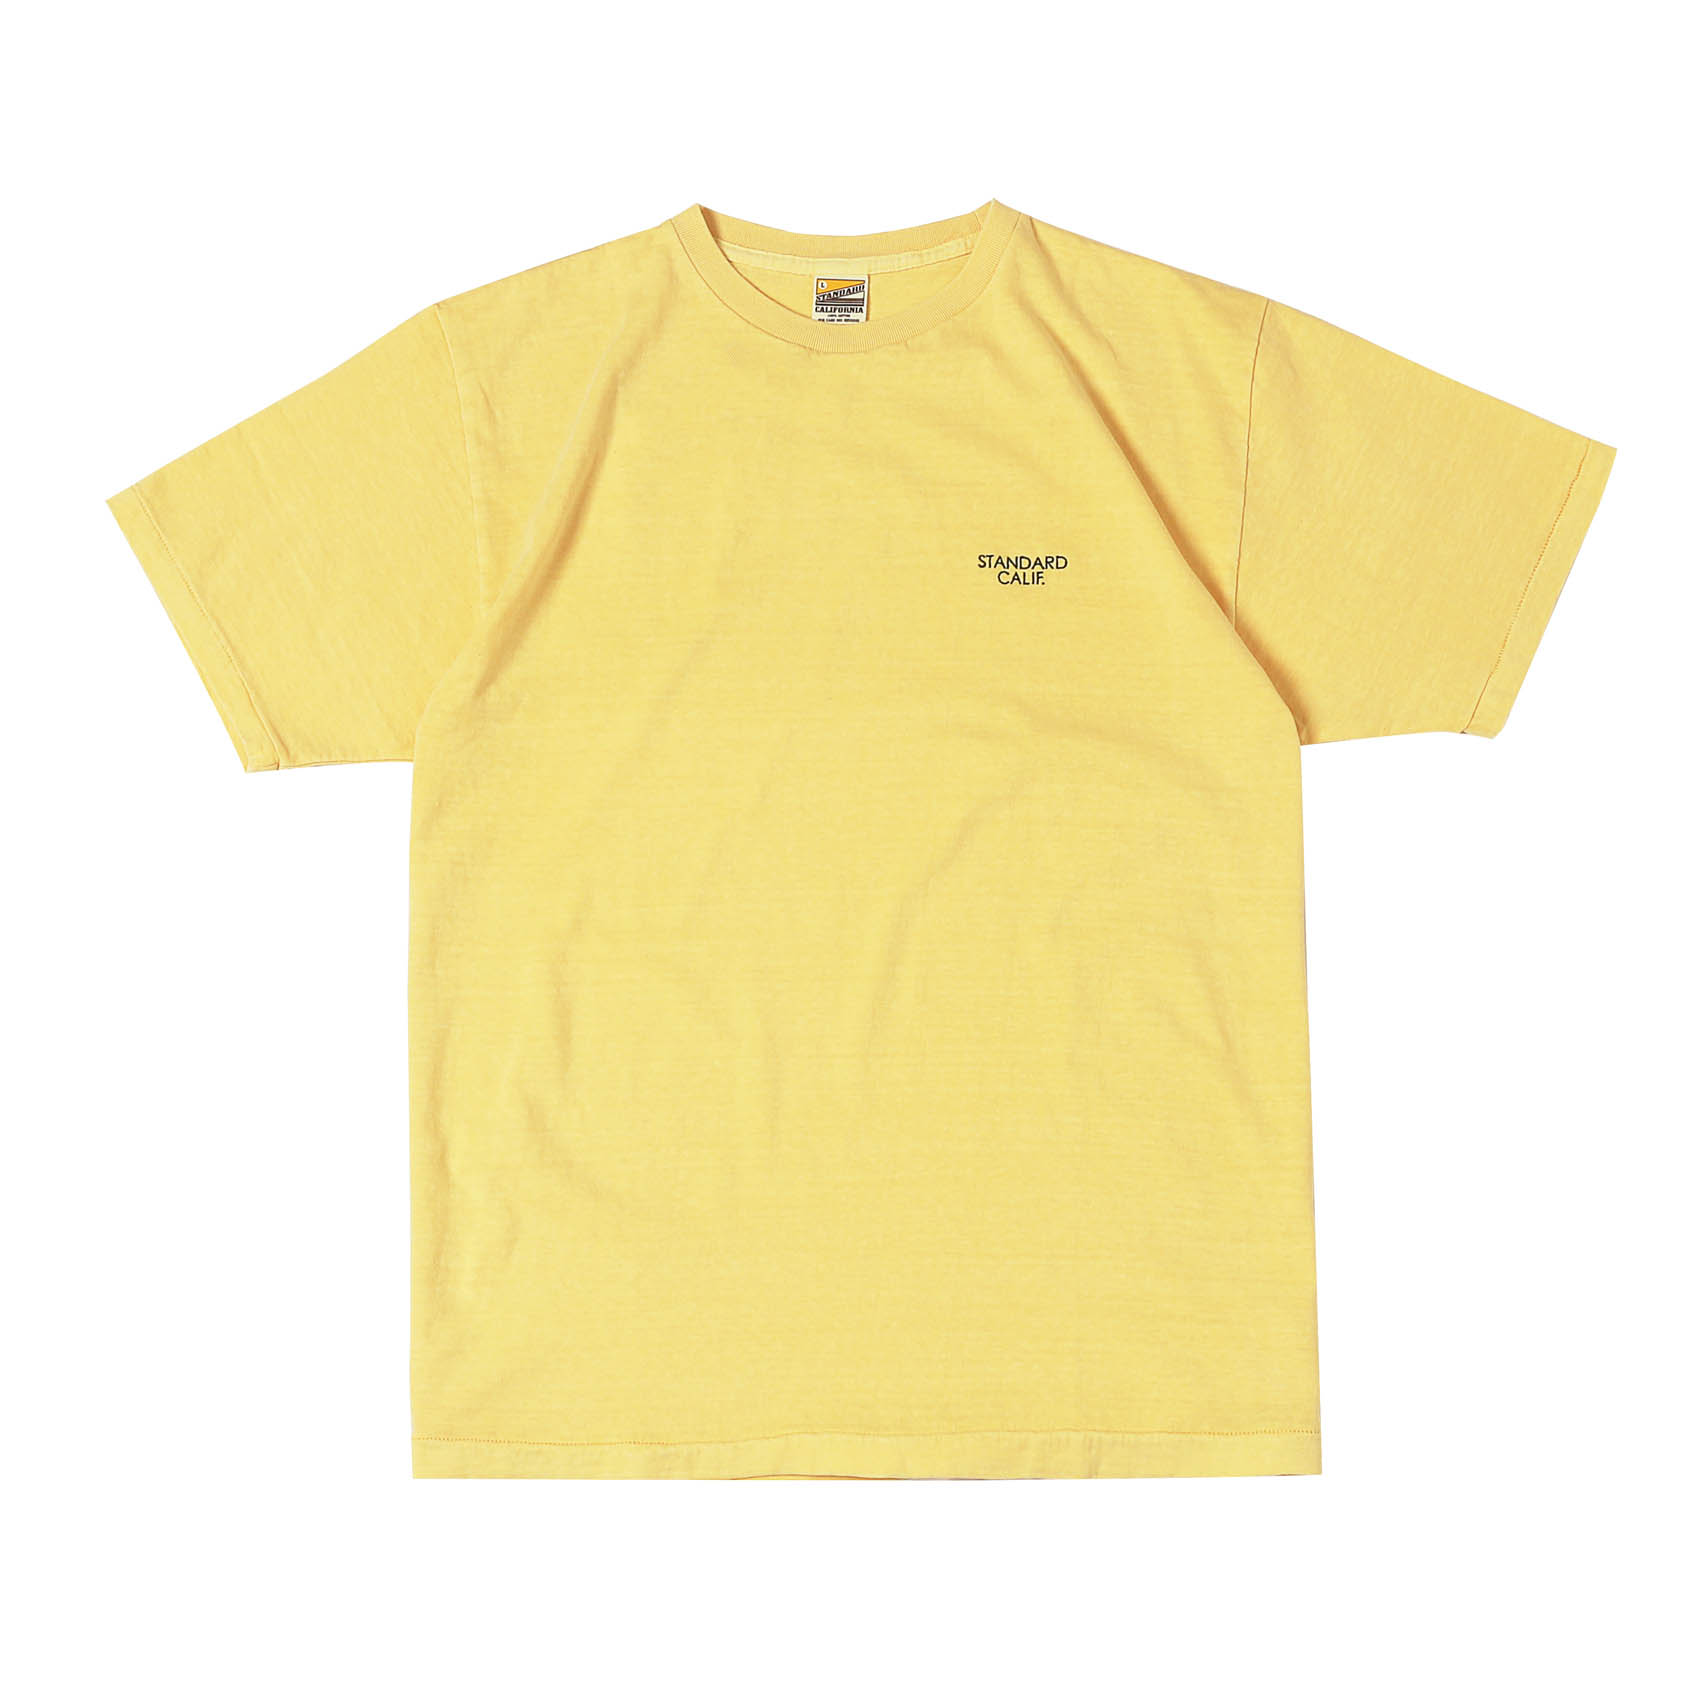 SMALL LOGO TEE - YELLOW